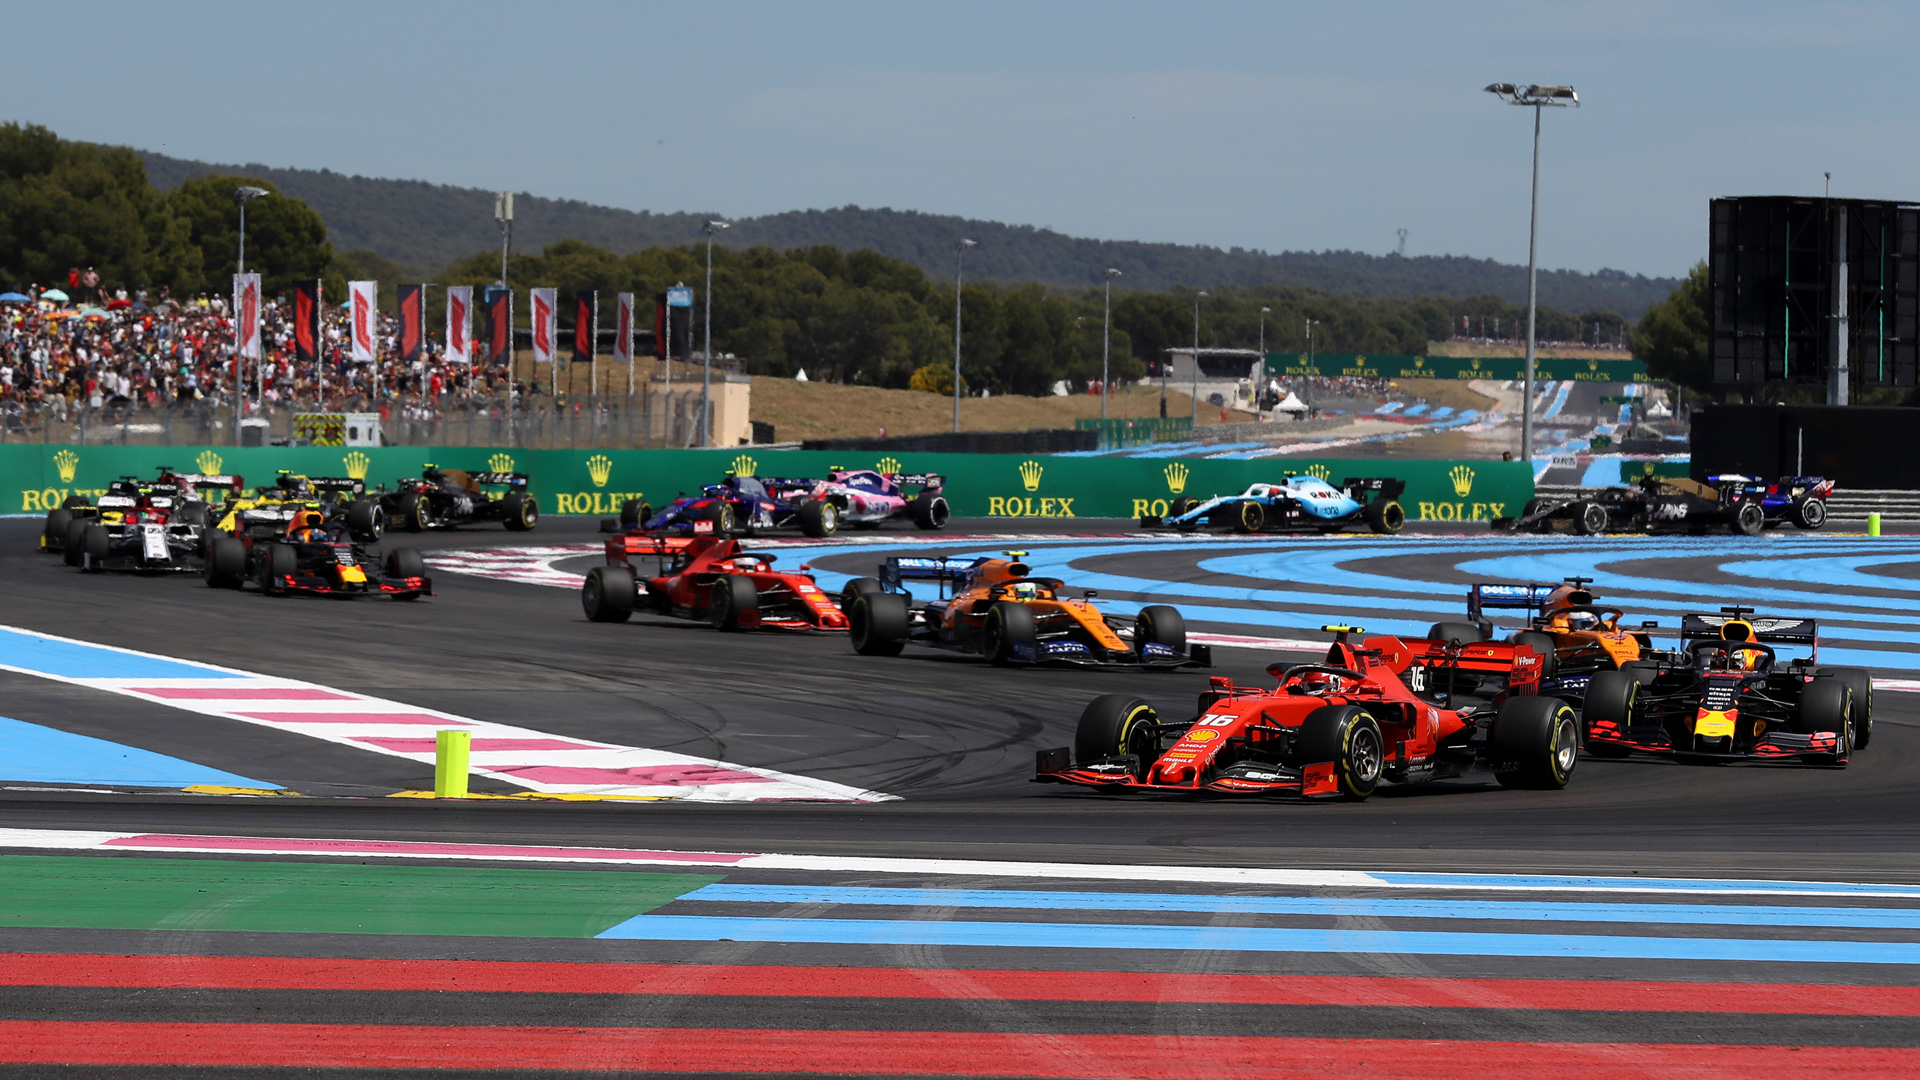 Changes at Williams, Mercedes' fightback, and more – 5 fascinating storylines ahead of the French GP | Formula 1®